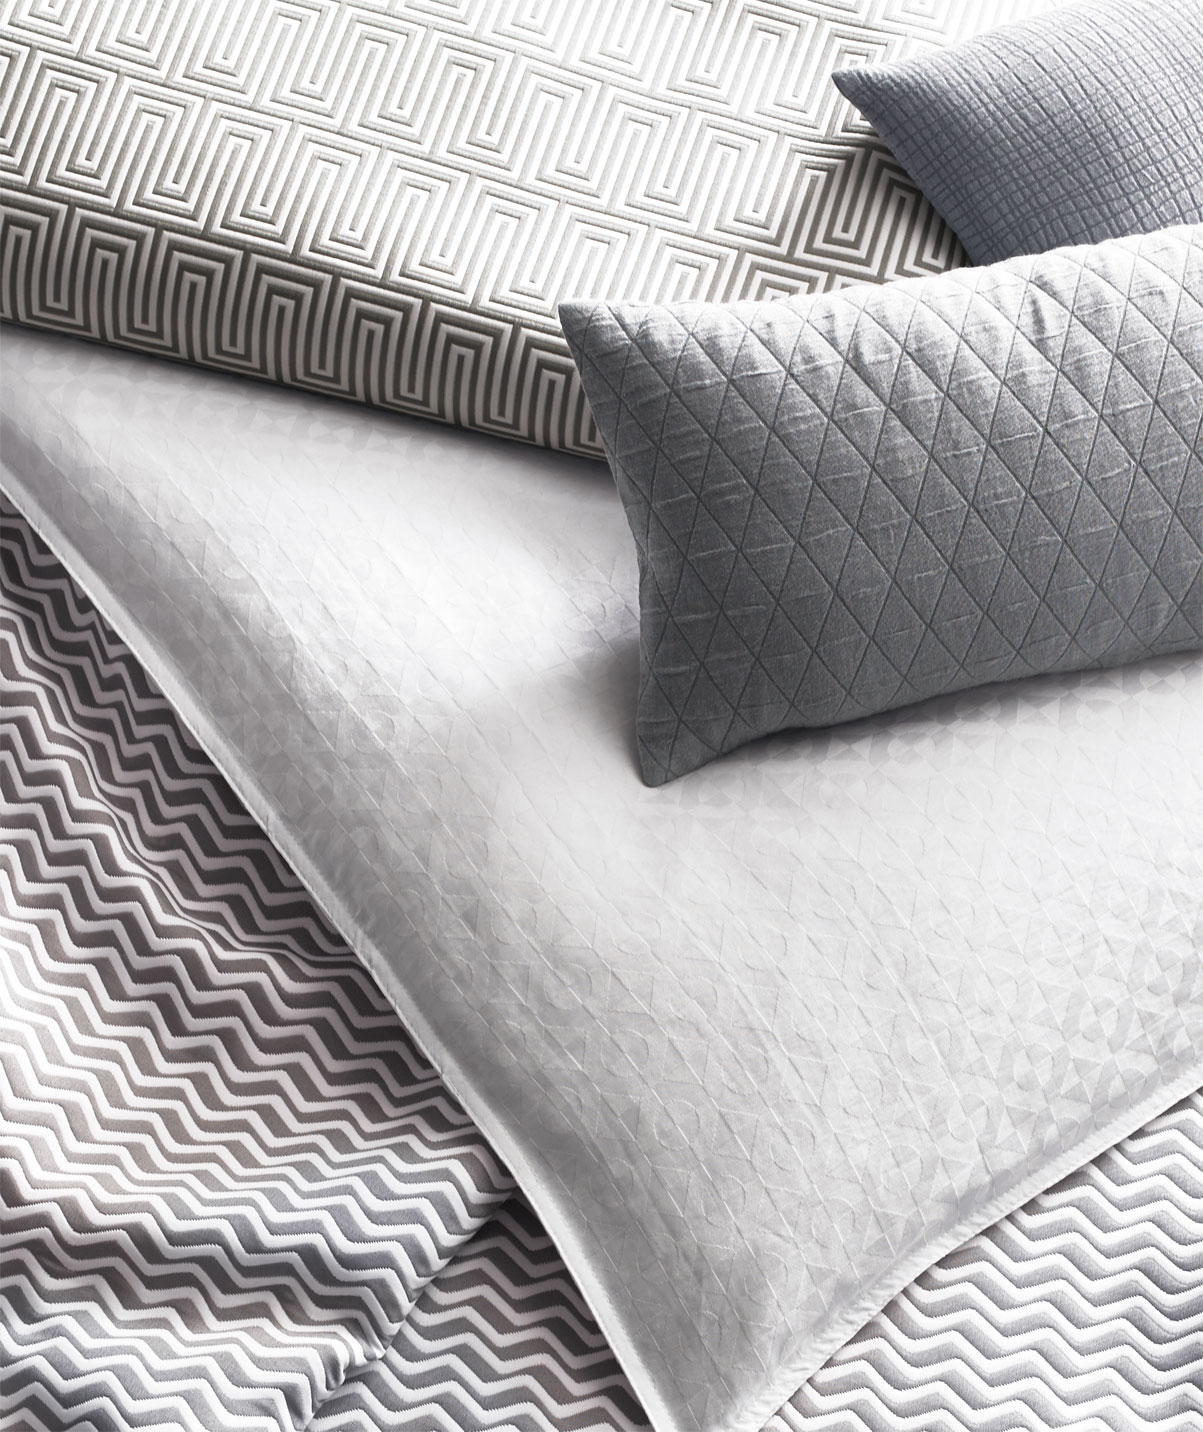 Kravet Contract launches customizable bedding line